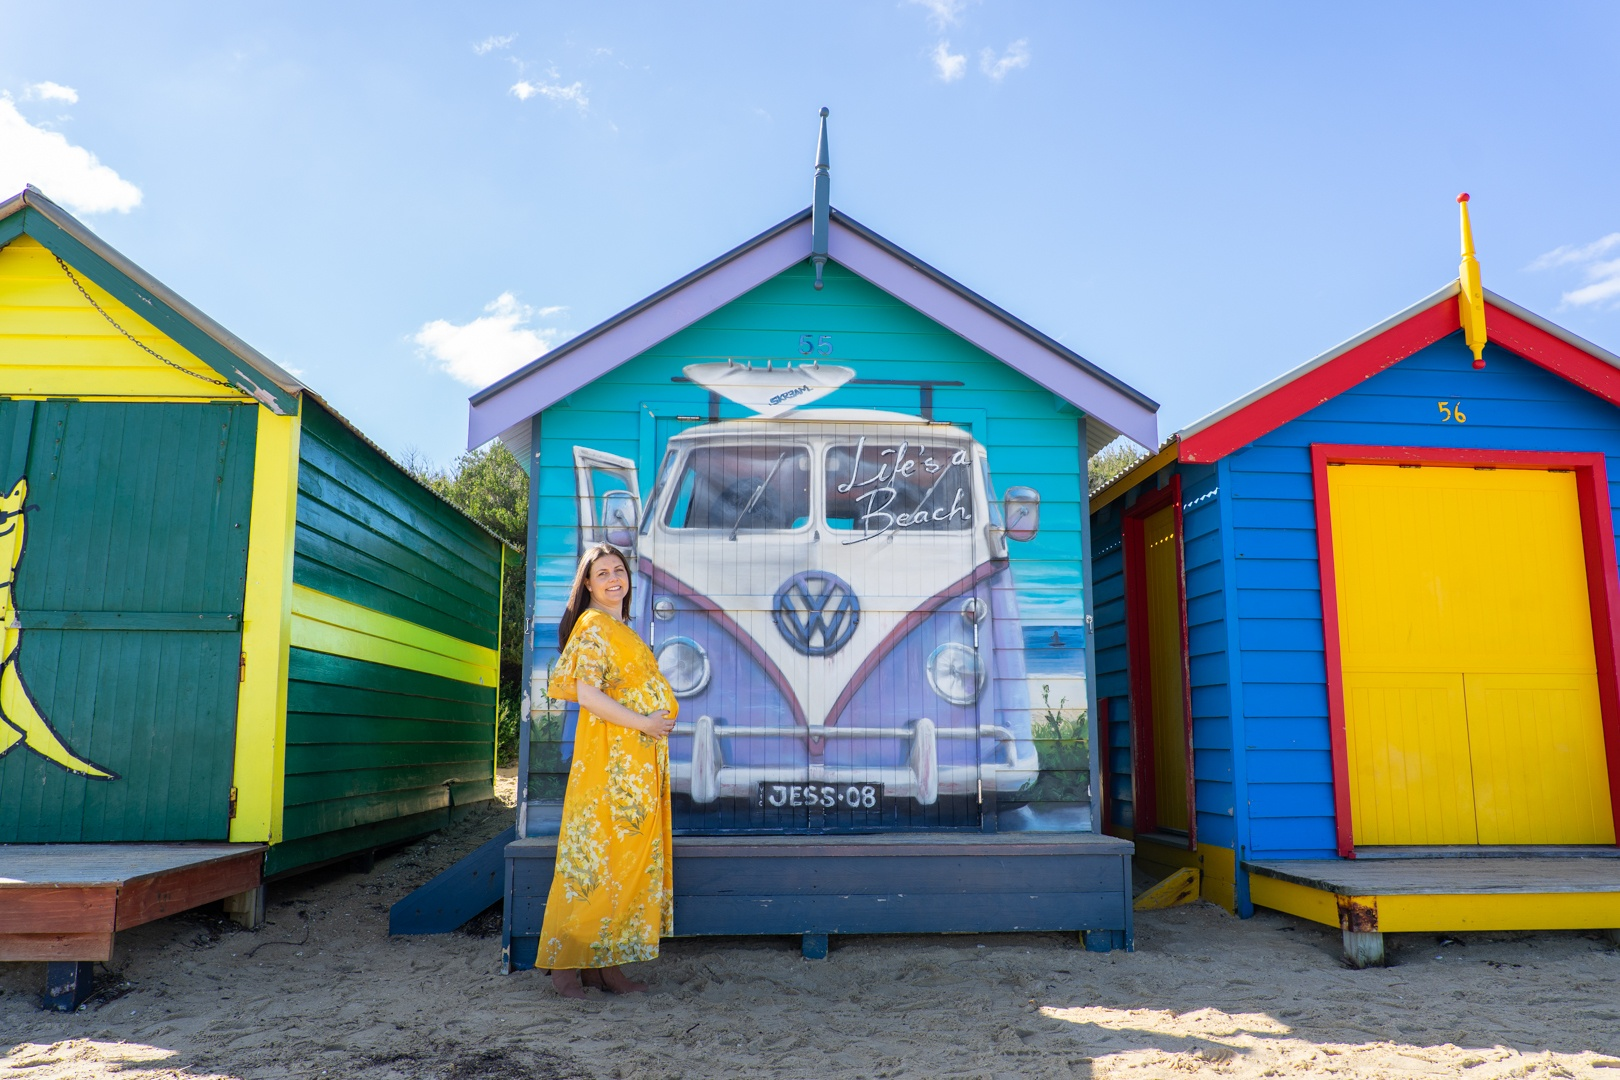 Me (Jess) standing in front of one of the Brighton Beach Boxes in Melbourne, Victoria, Australia, holding my pregnant belly. The mural on the box says 'Life's a Beach' over the image of a campervan and has the name 'Jess' on the number plate.